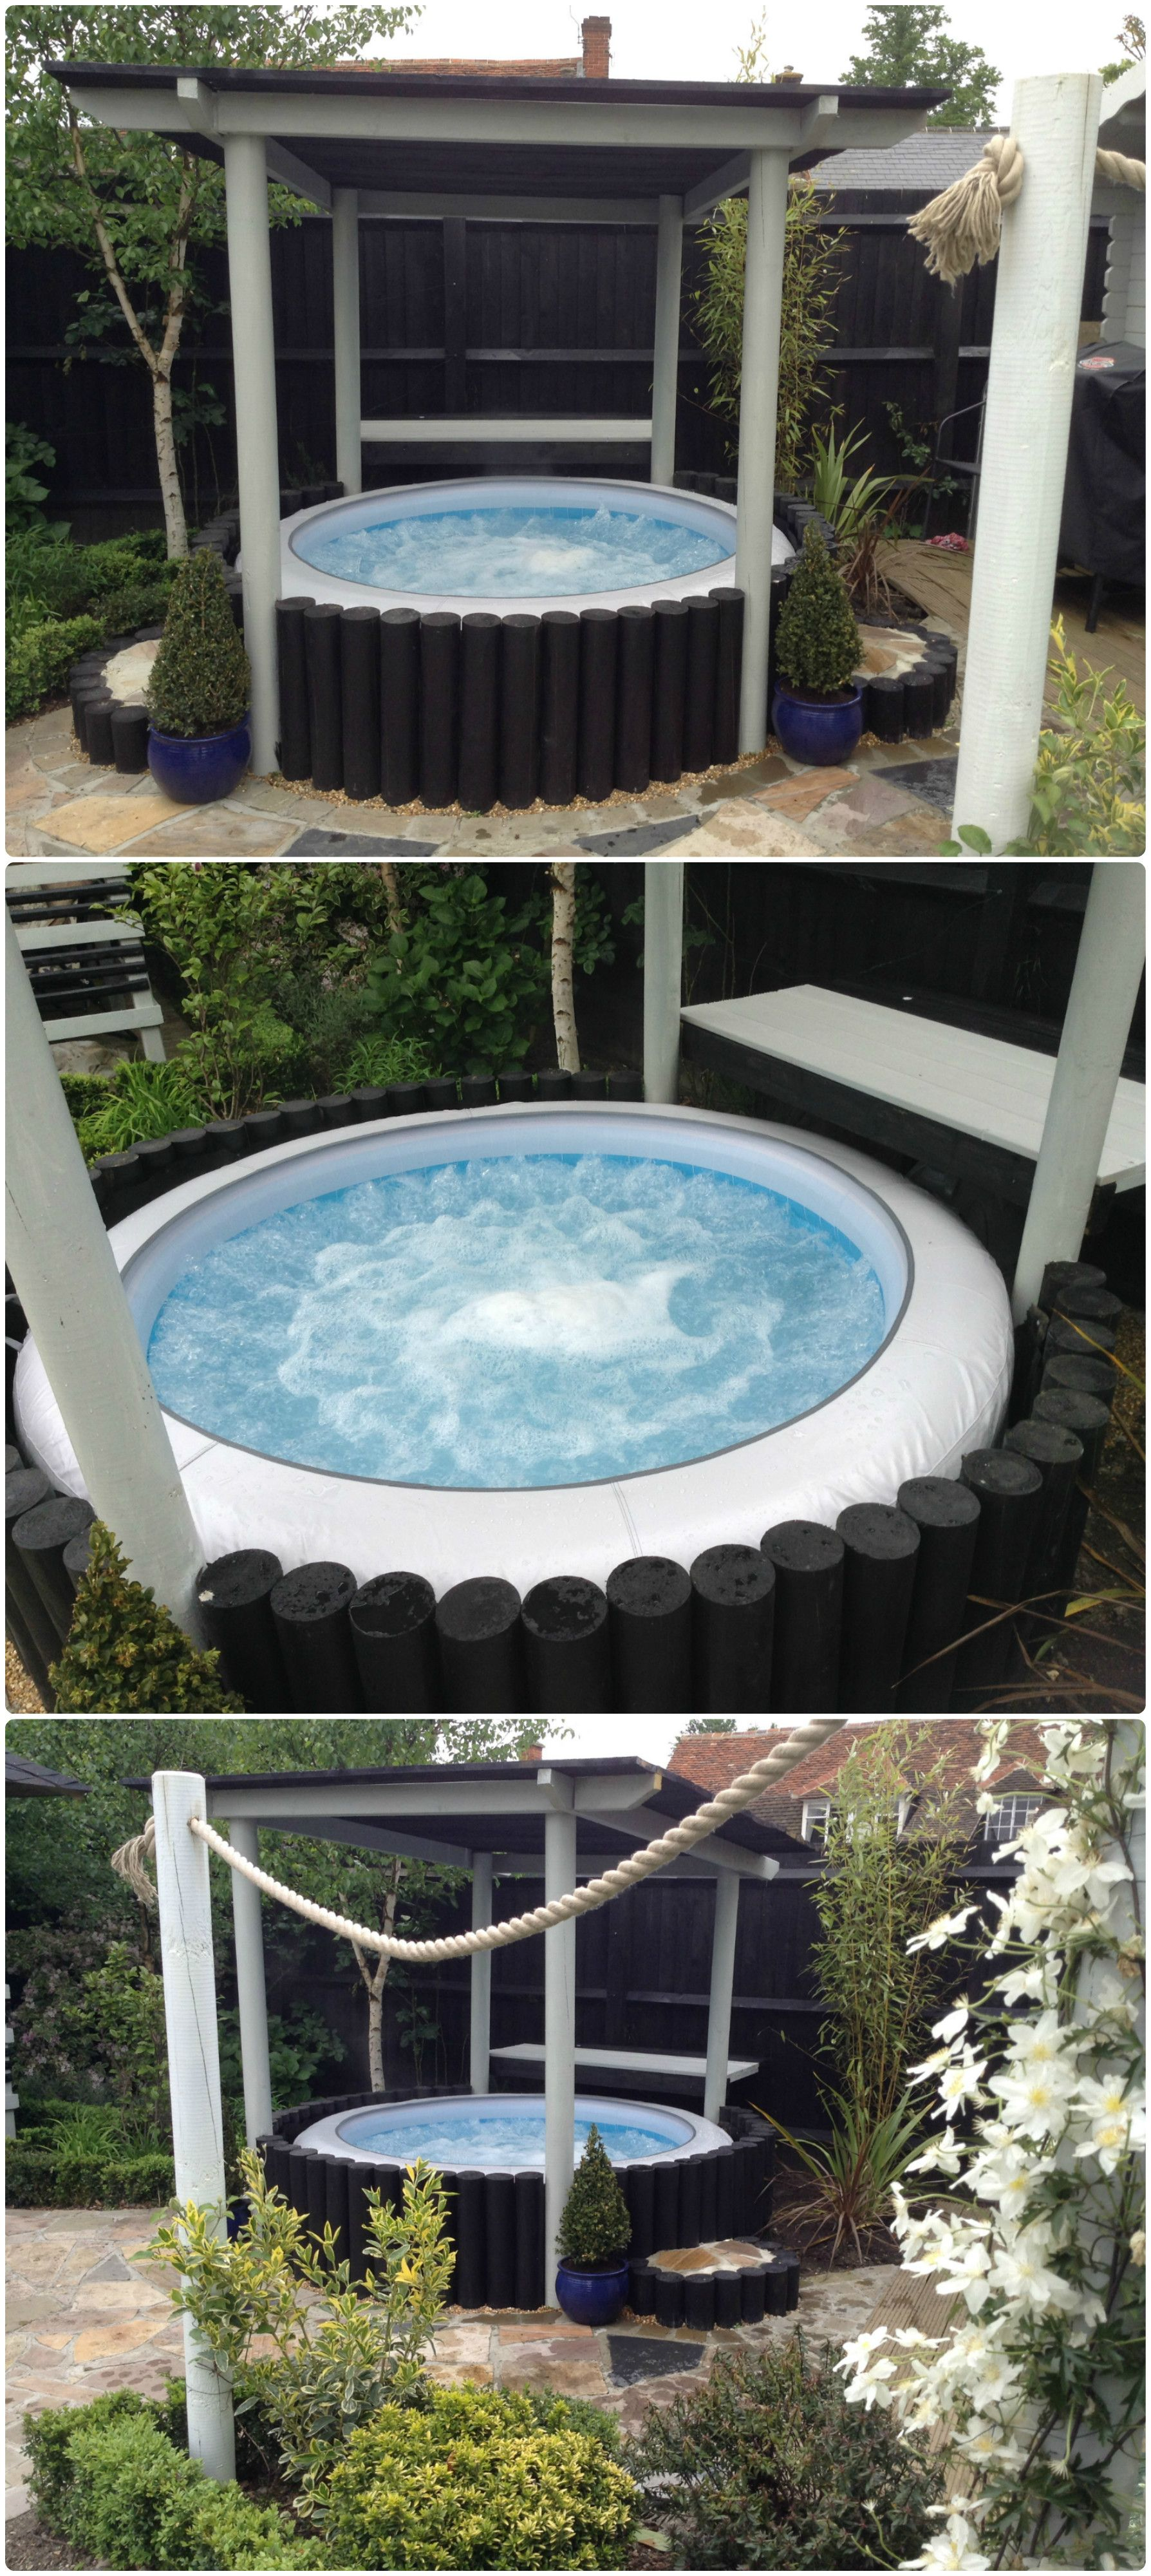 everyone a from softubexpress portable web patio tubs current new list hot for softubs of our spas showings pools soft check pettis pictures markus festival softub com site tub